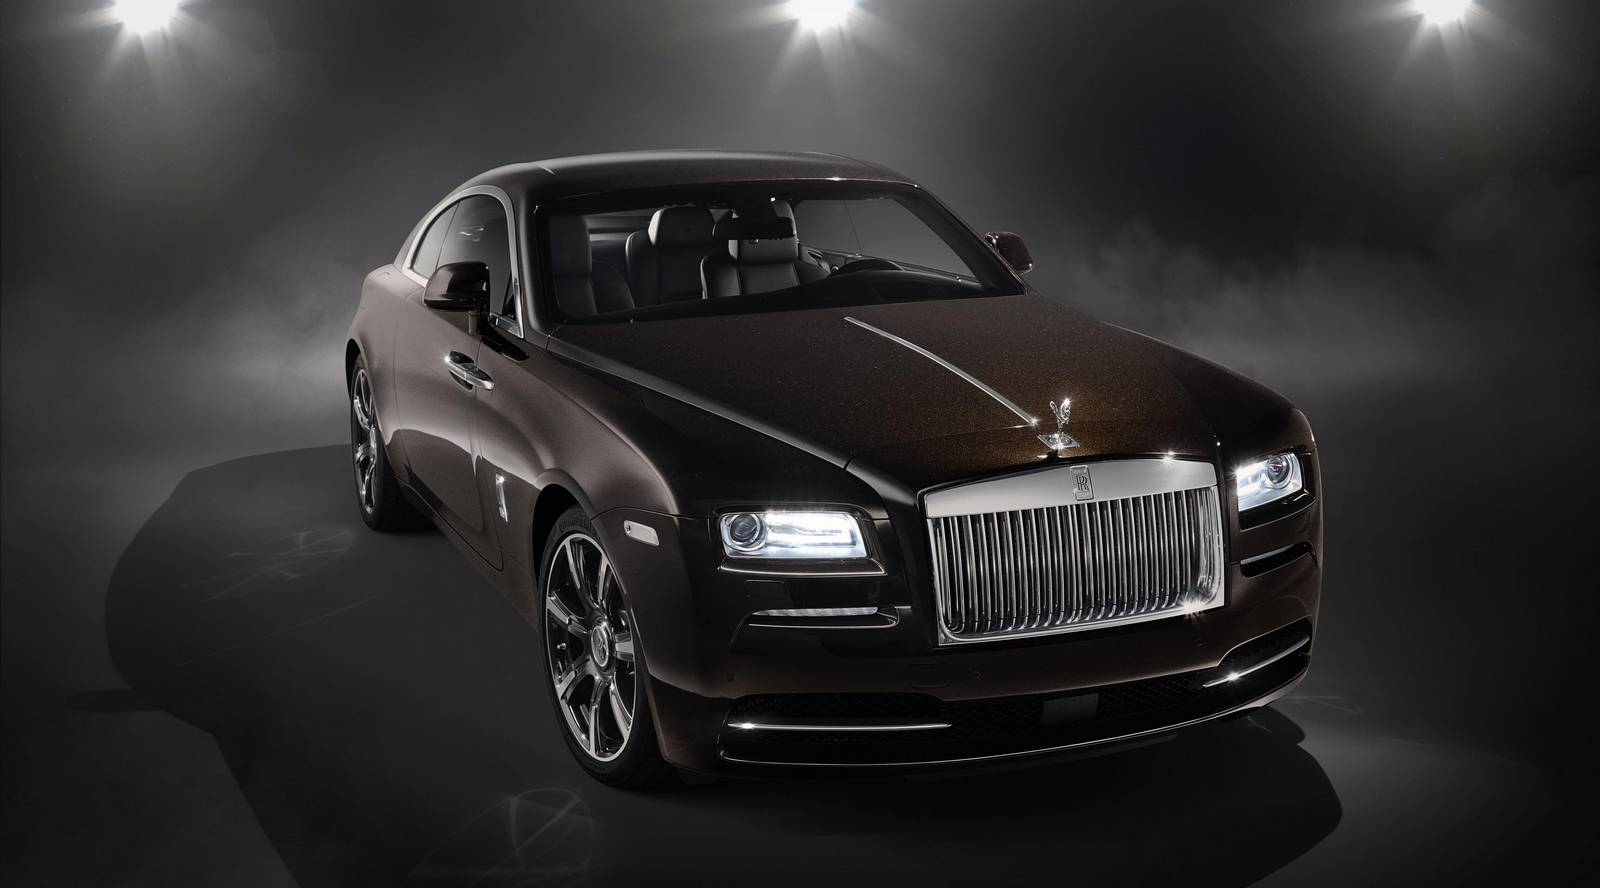 official rolls royce wraith inspired by music gtspirit. Black Bedroom Furniture Sets. Home Design Ideas